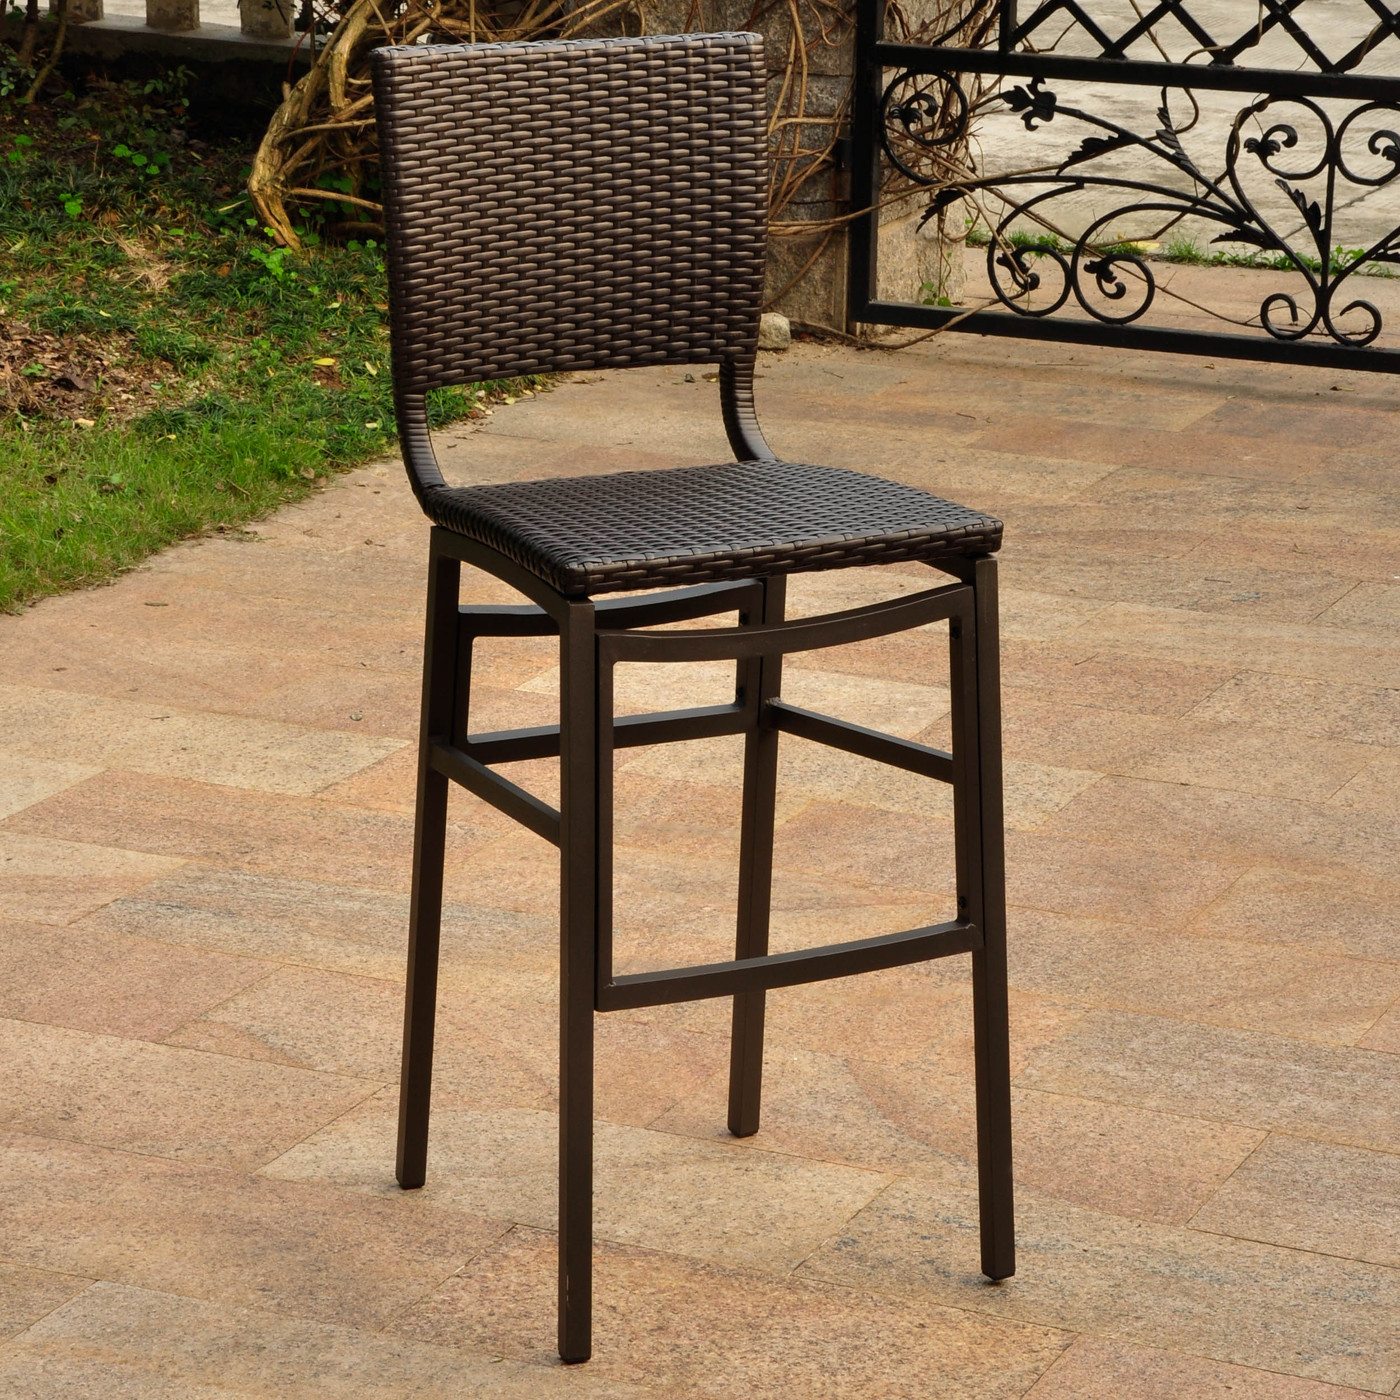 Best ideas about Patio Bar Stools . Save or Pin International Caravan 4215 2CH Barcelona Outdoor Bar Stool Now.